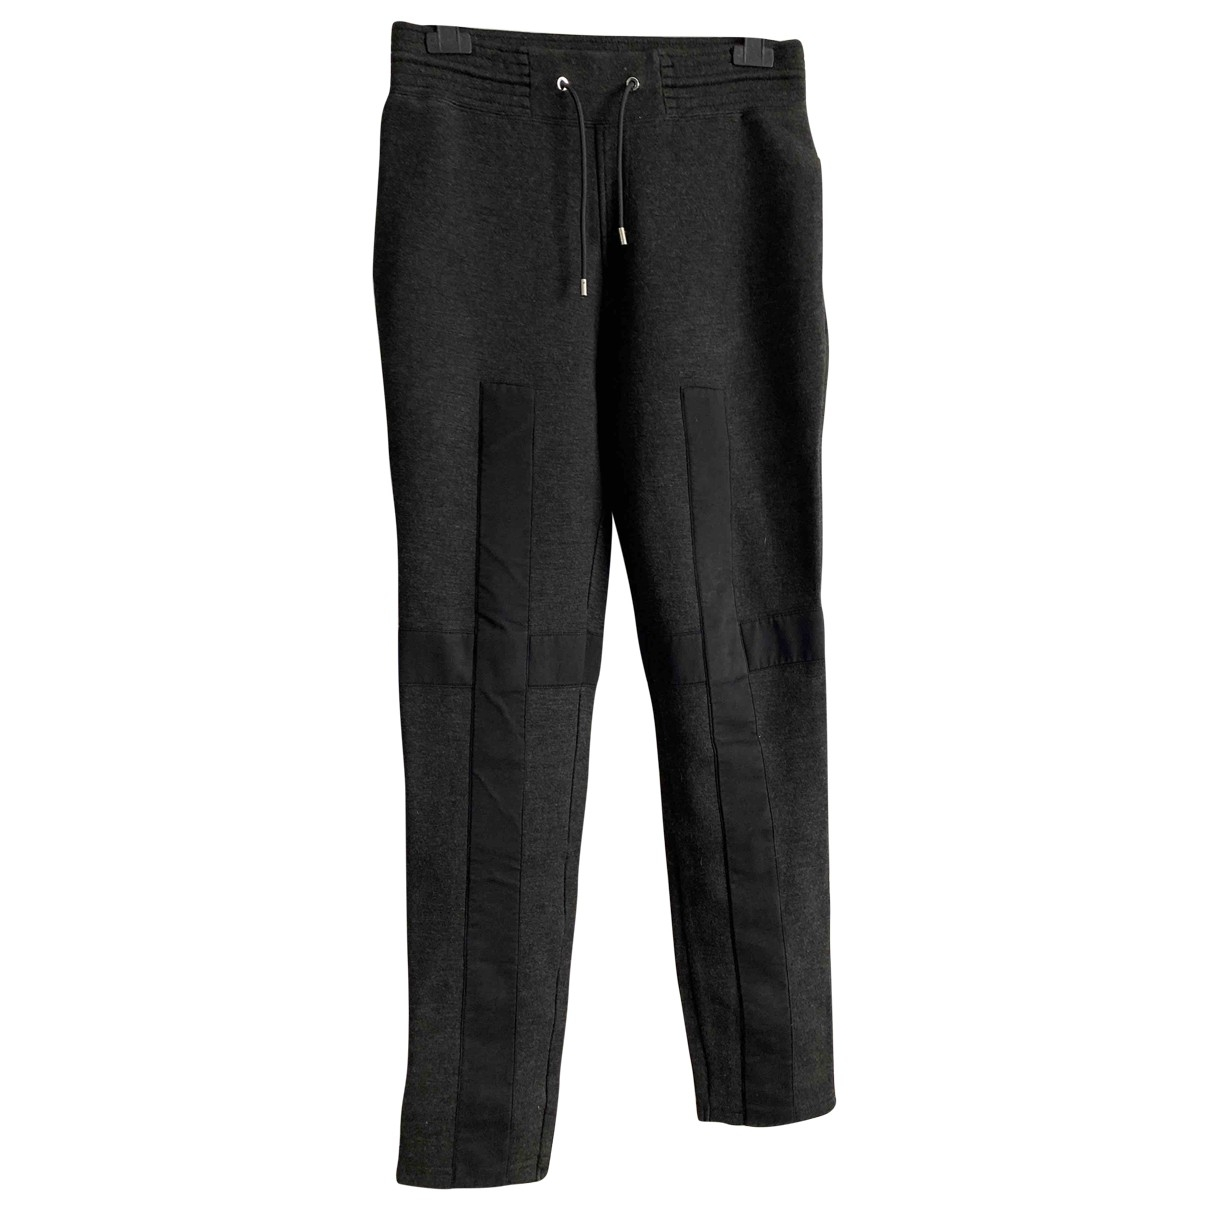 Givenchy \N Black Cotton Trousers for Men S International